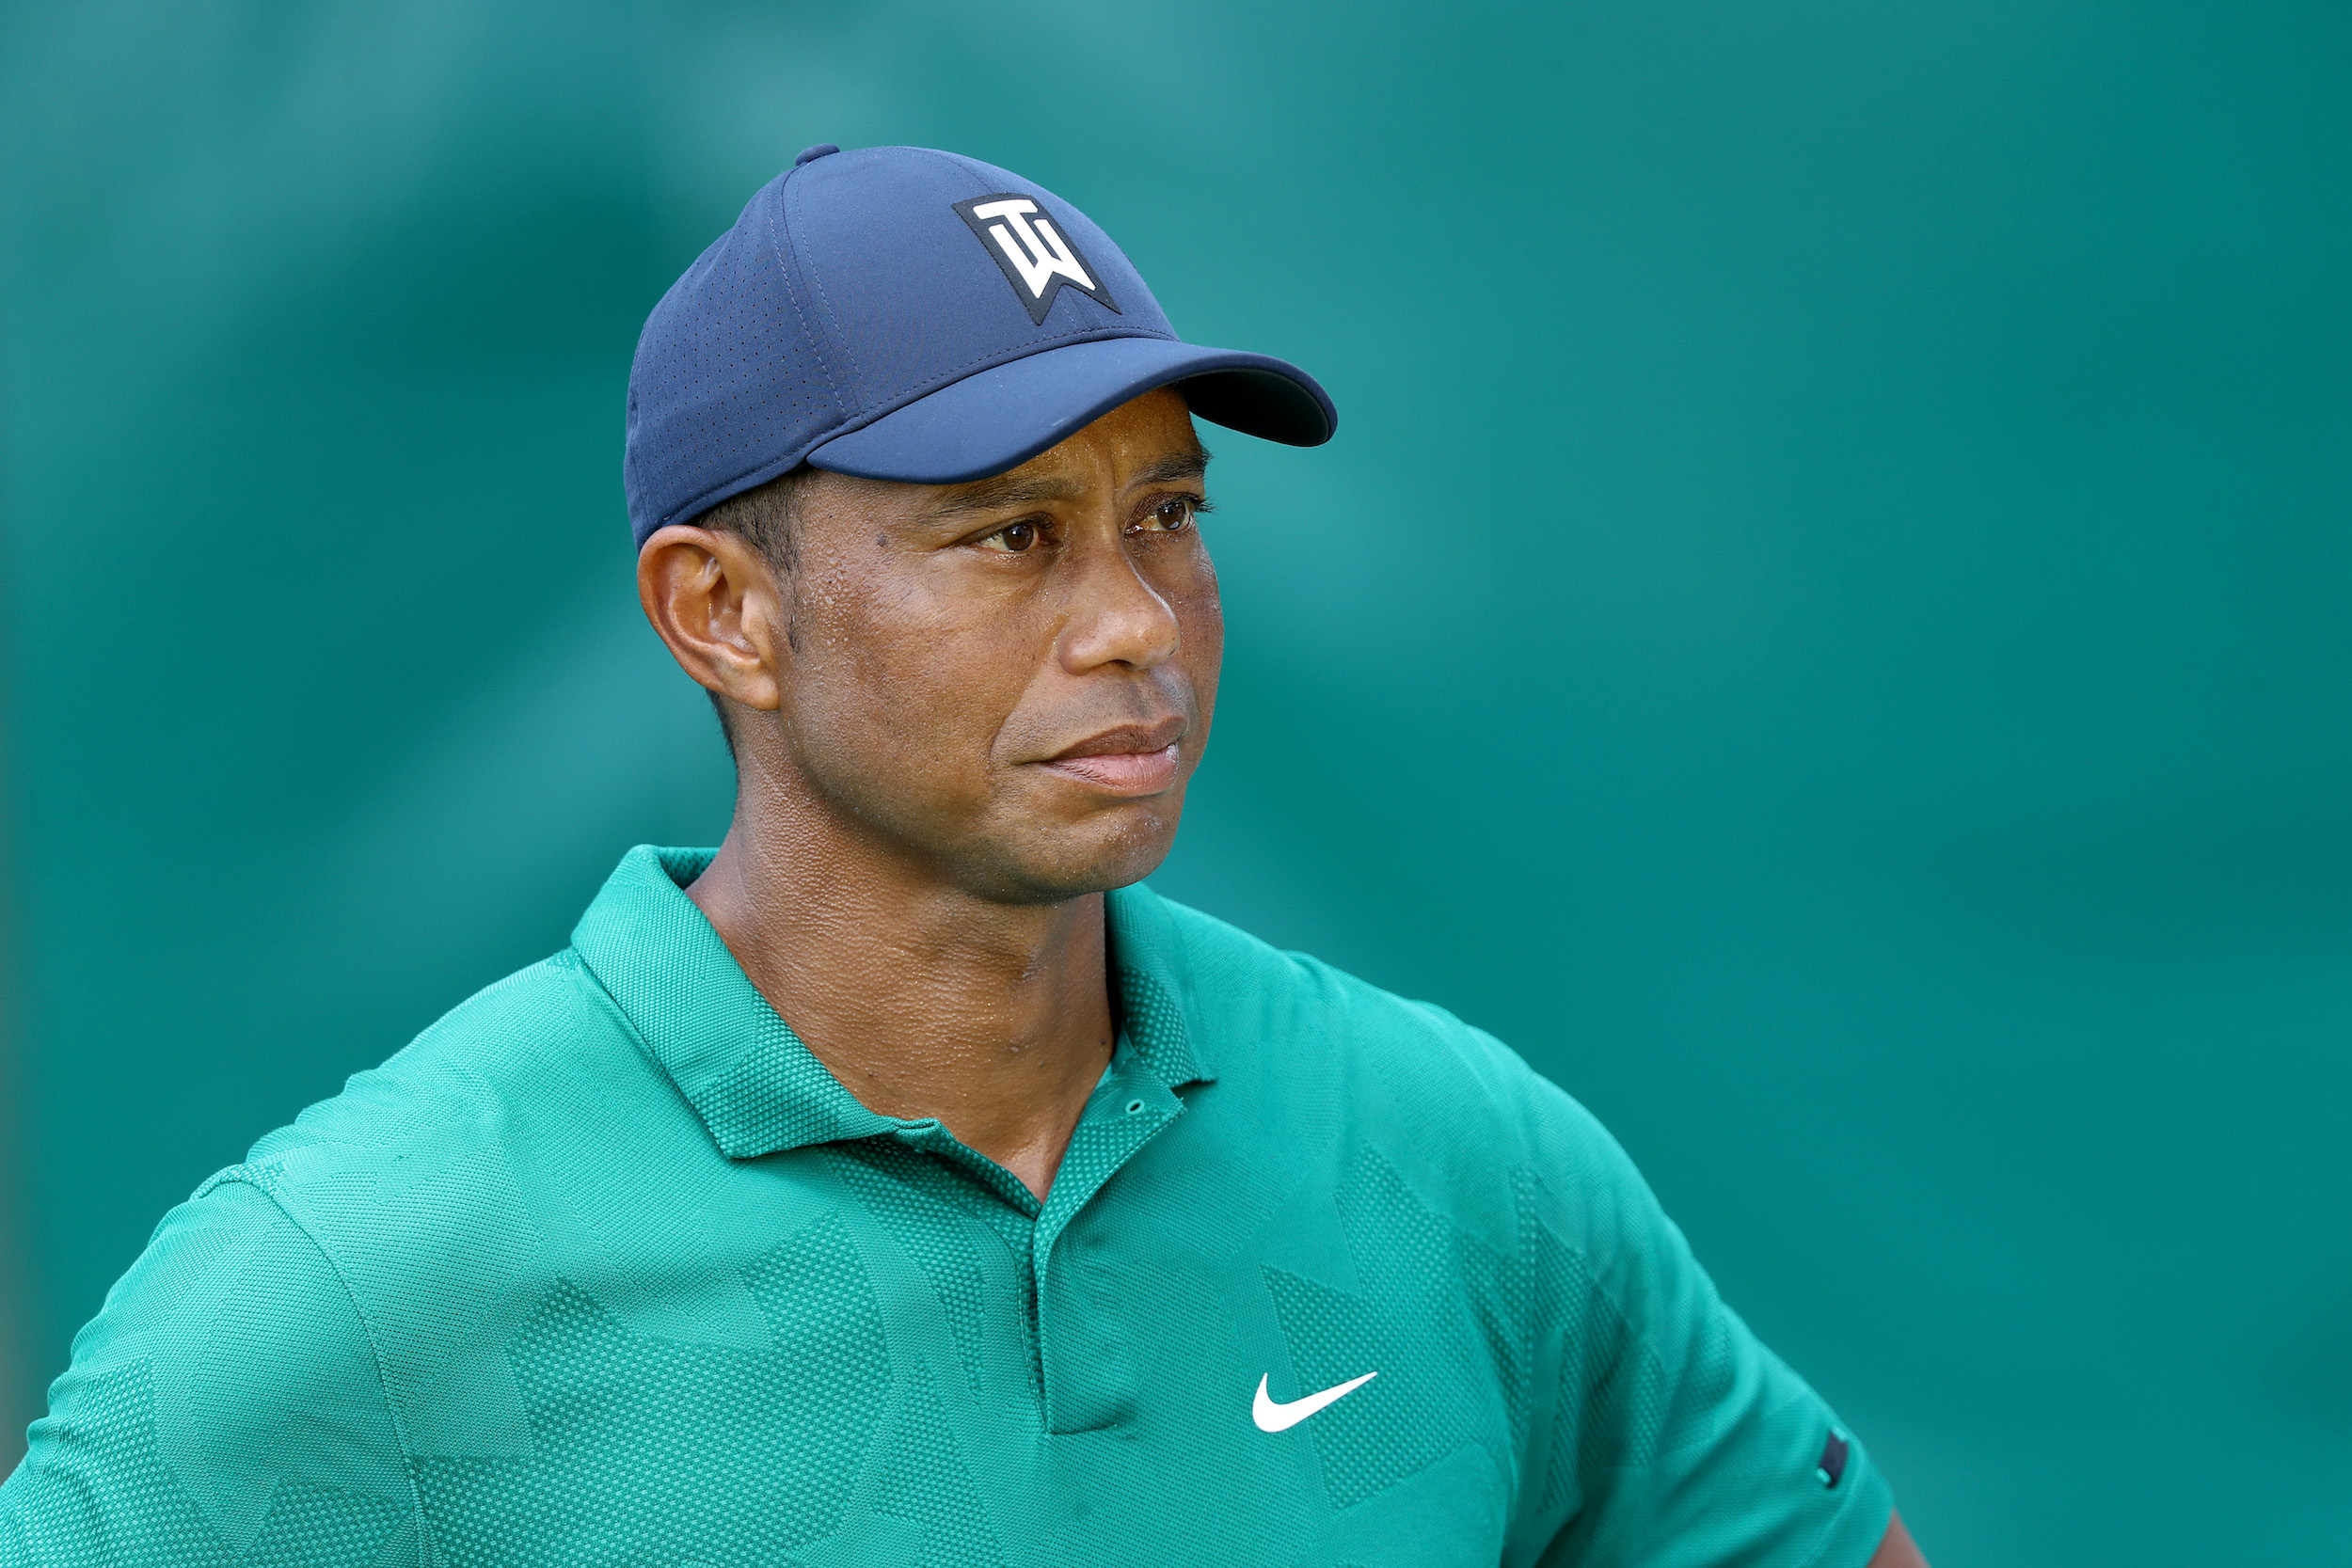 Tiger Woods has earned millions playing golf, but didn't treat some Navy SEALs to lunch.